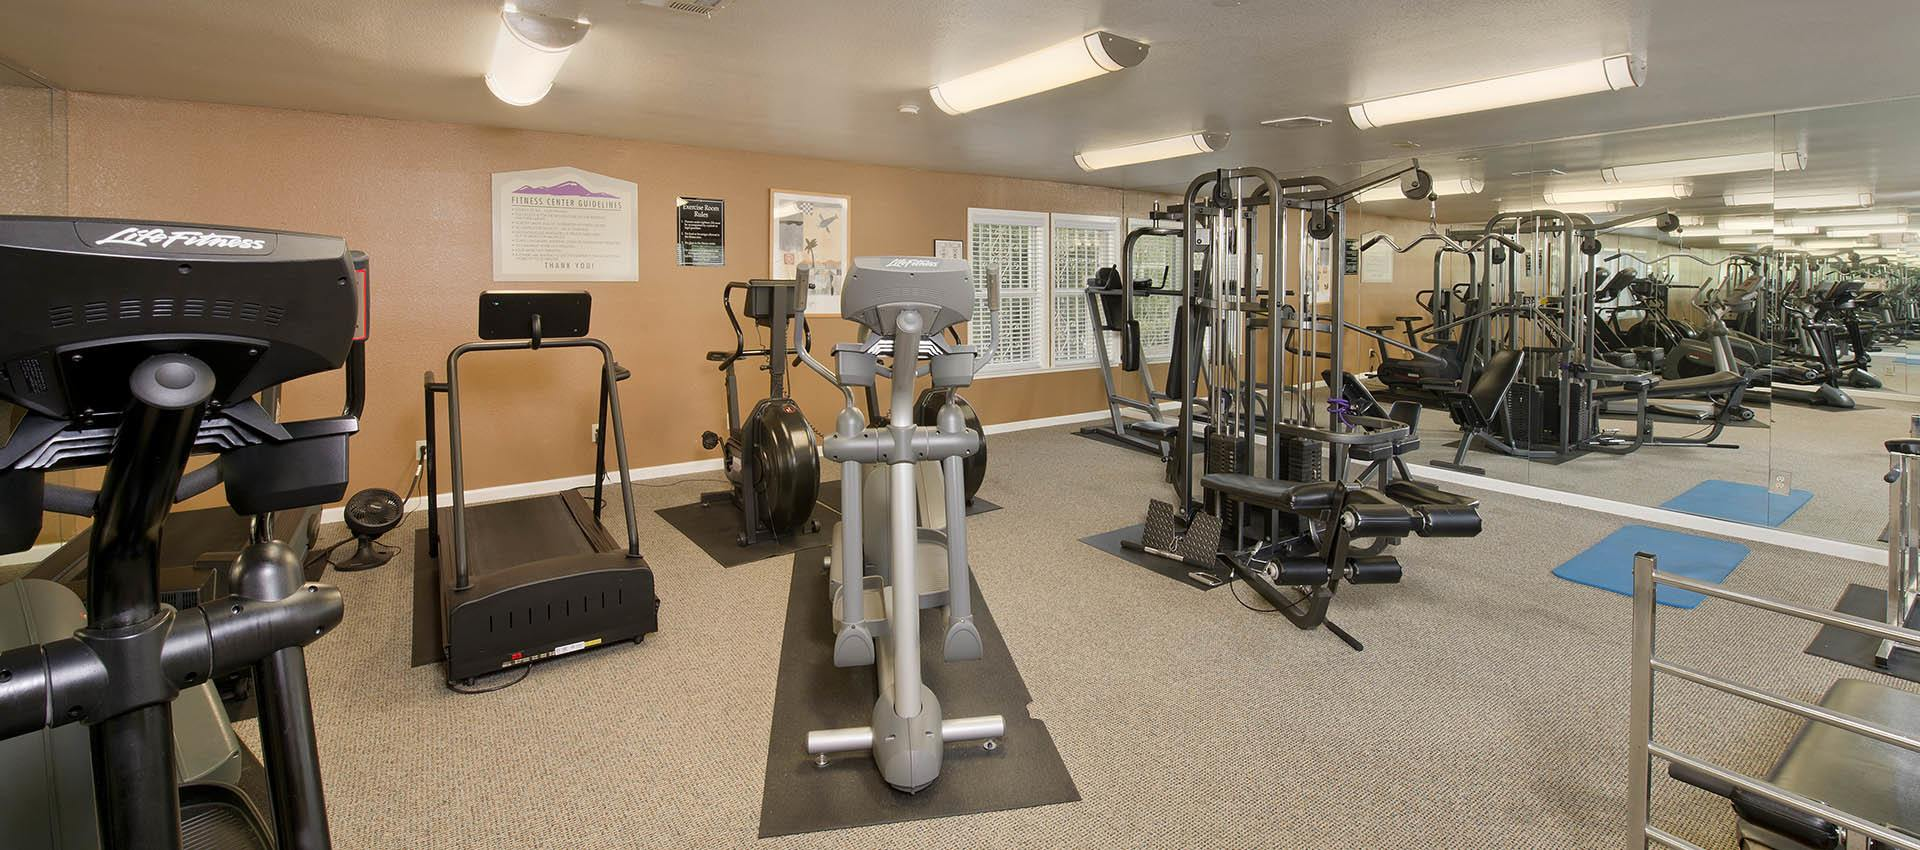 Well equipped fitness center at Sterling Heights Apartment Homes in Benicia